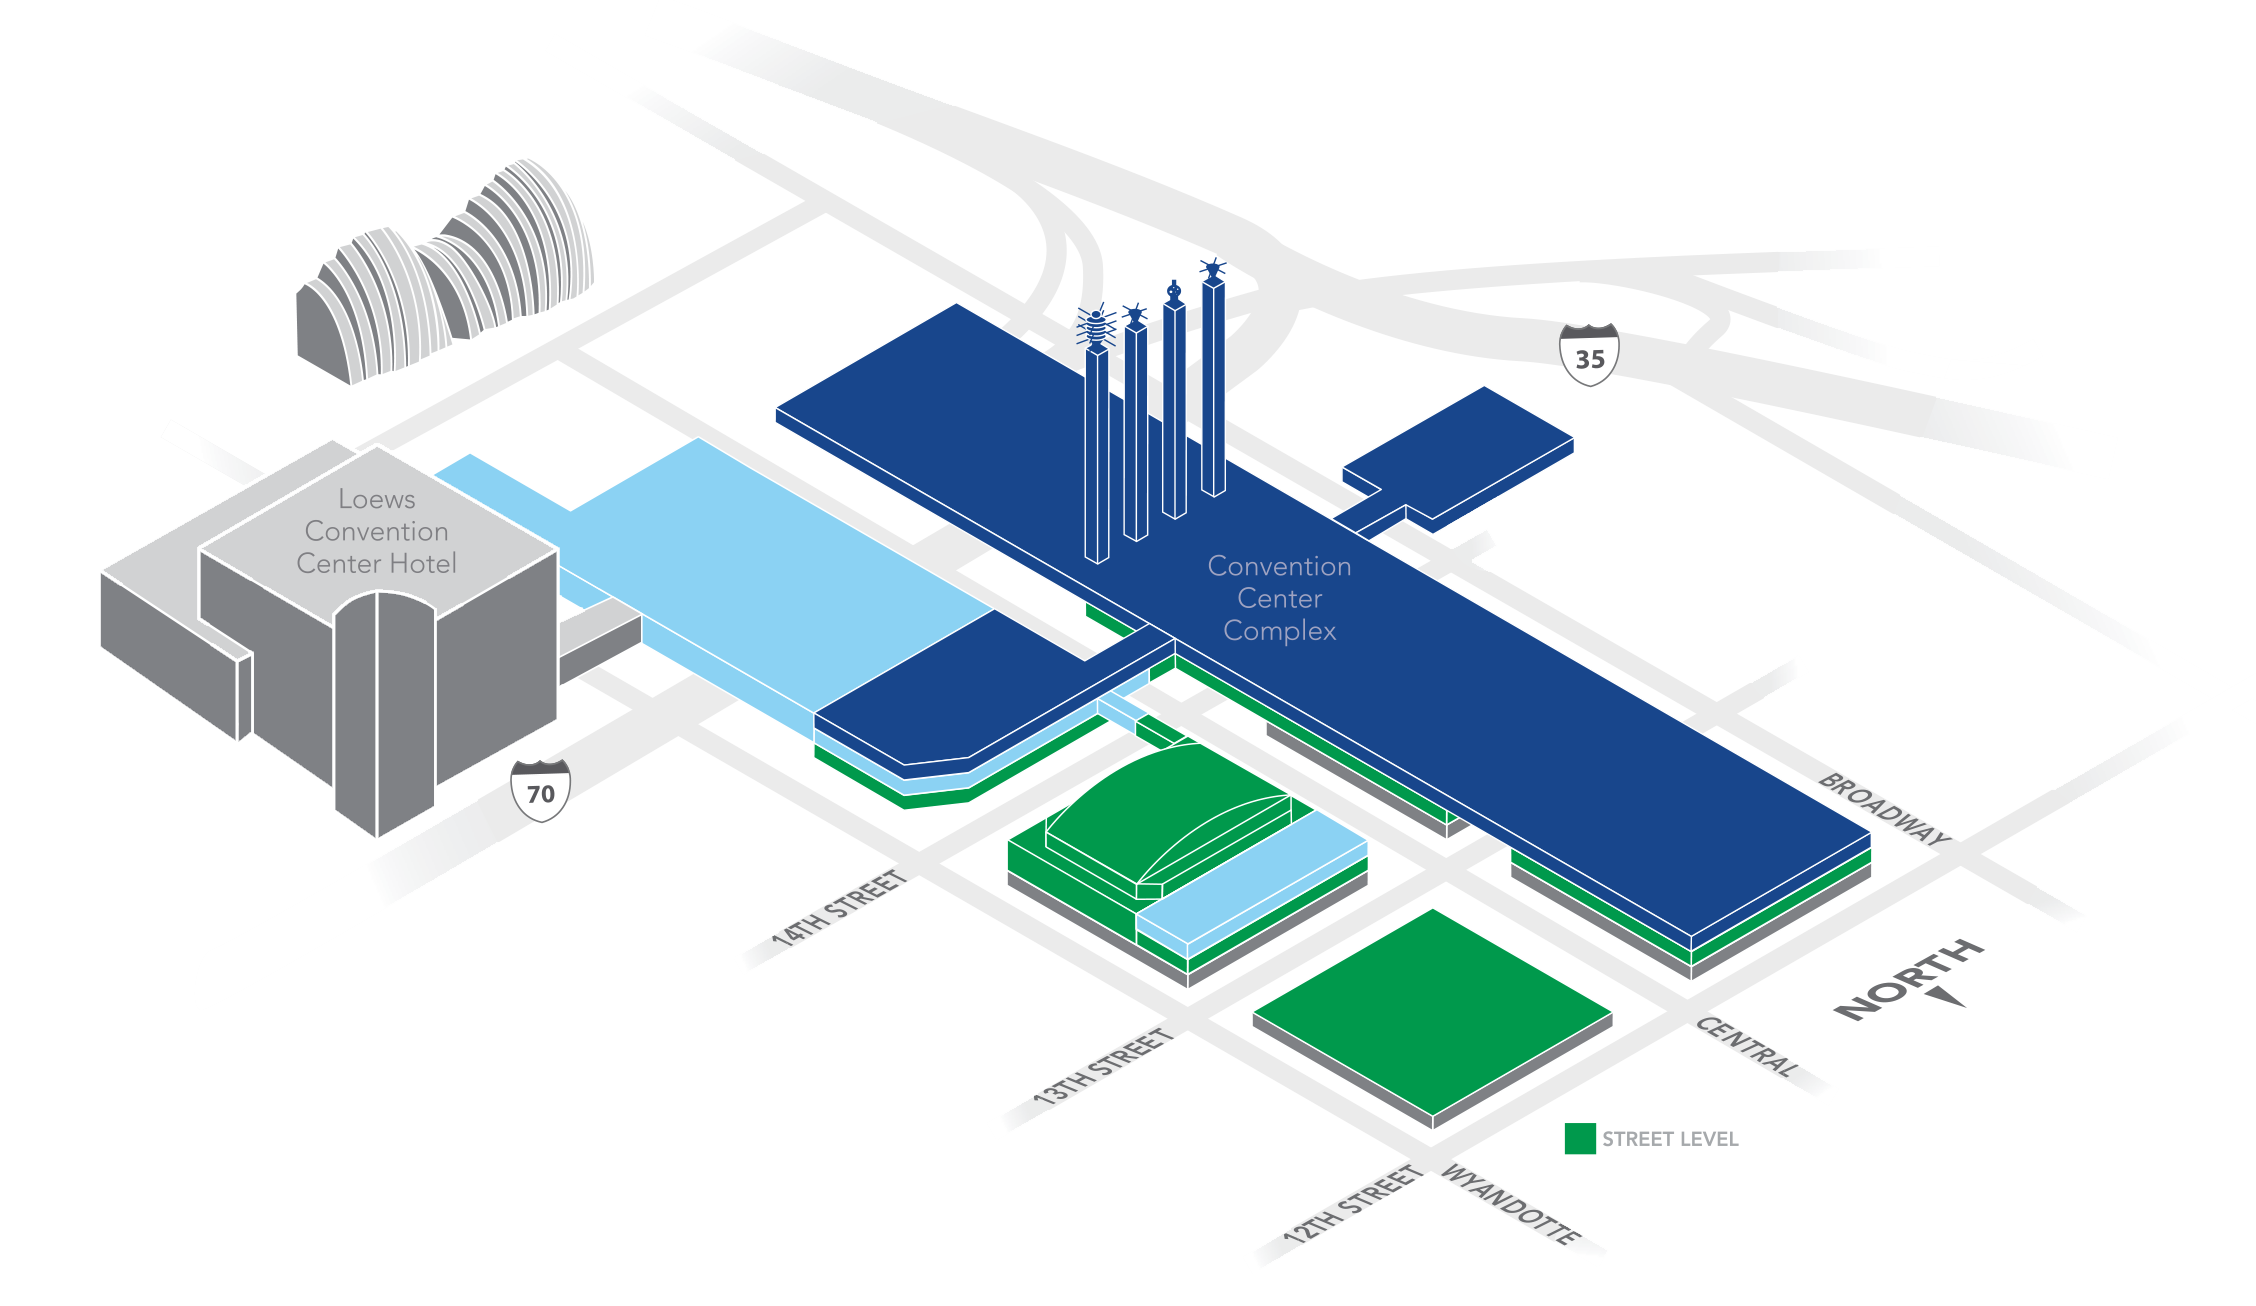 Kansas City Convention Center Layout